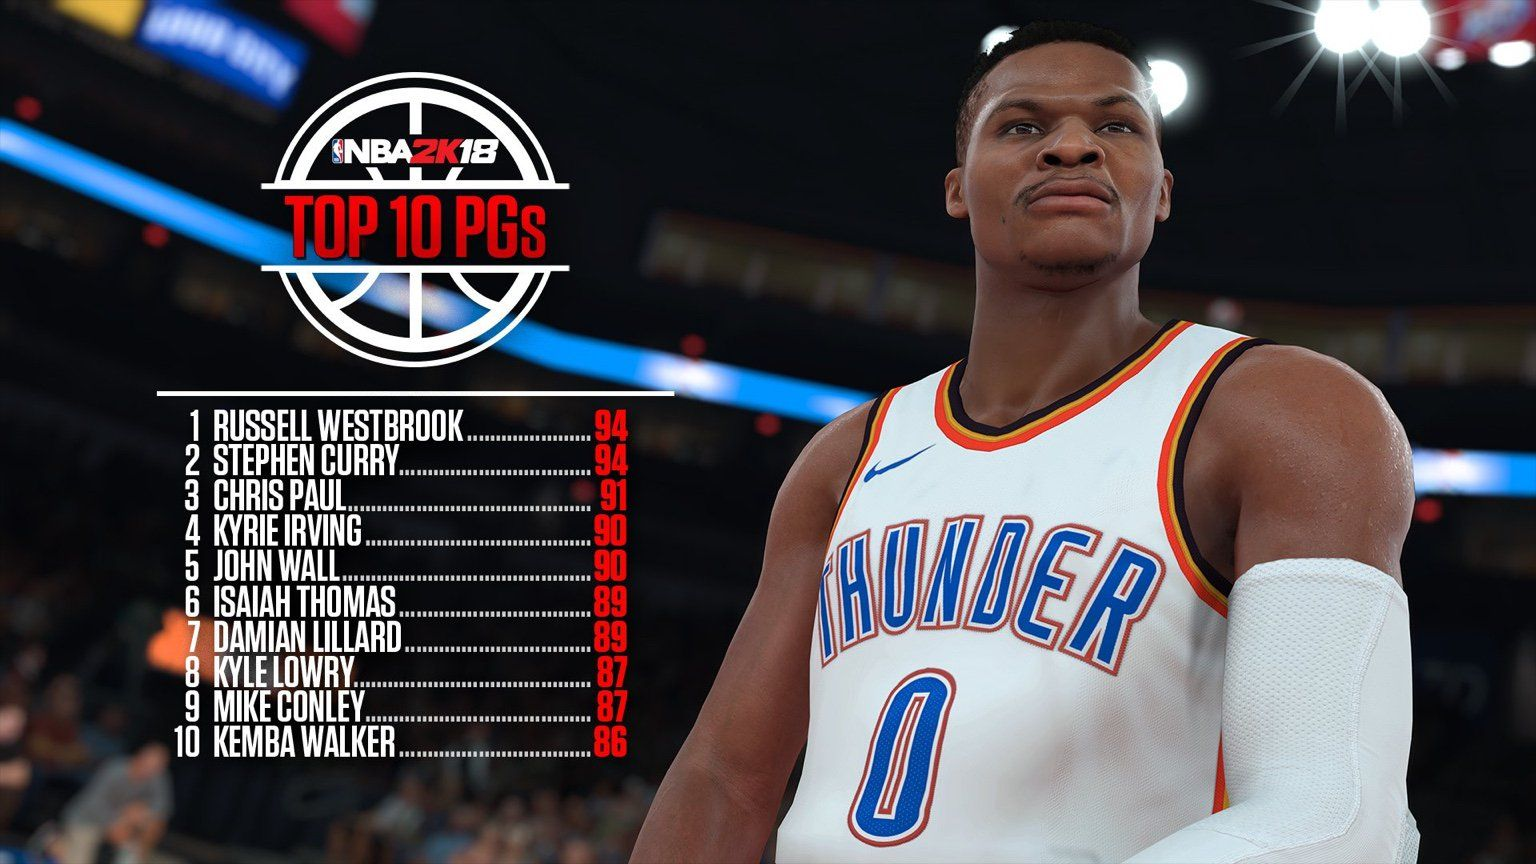 NBA 2K18 top point guard ratings